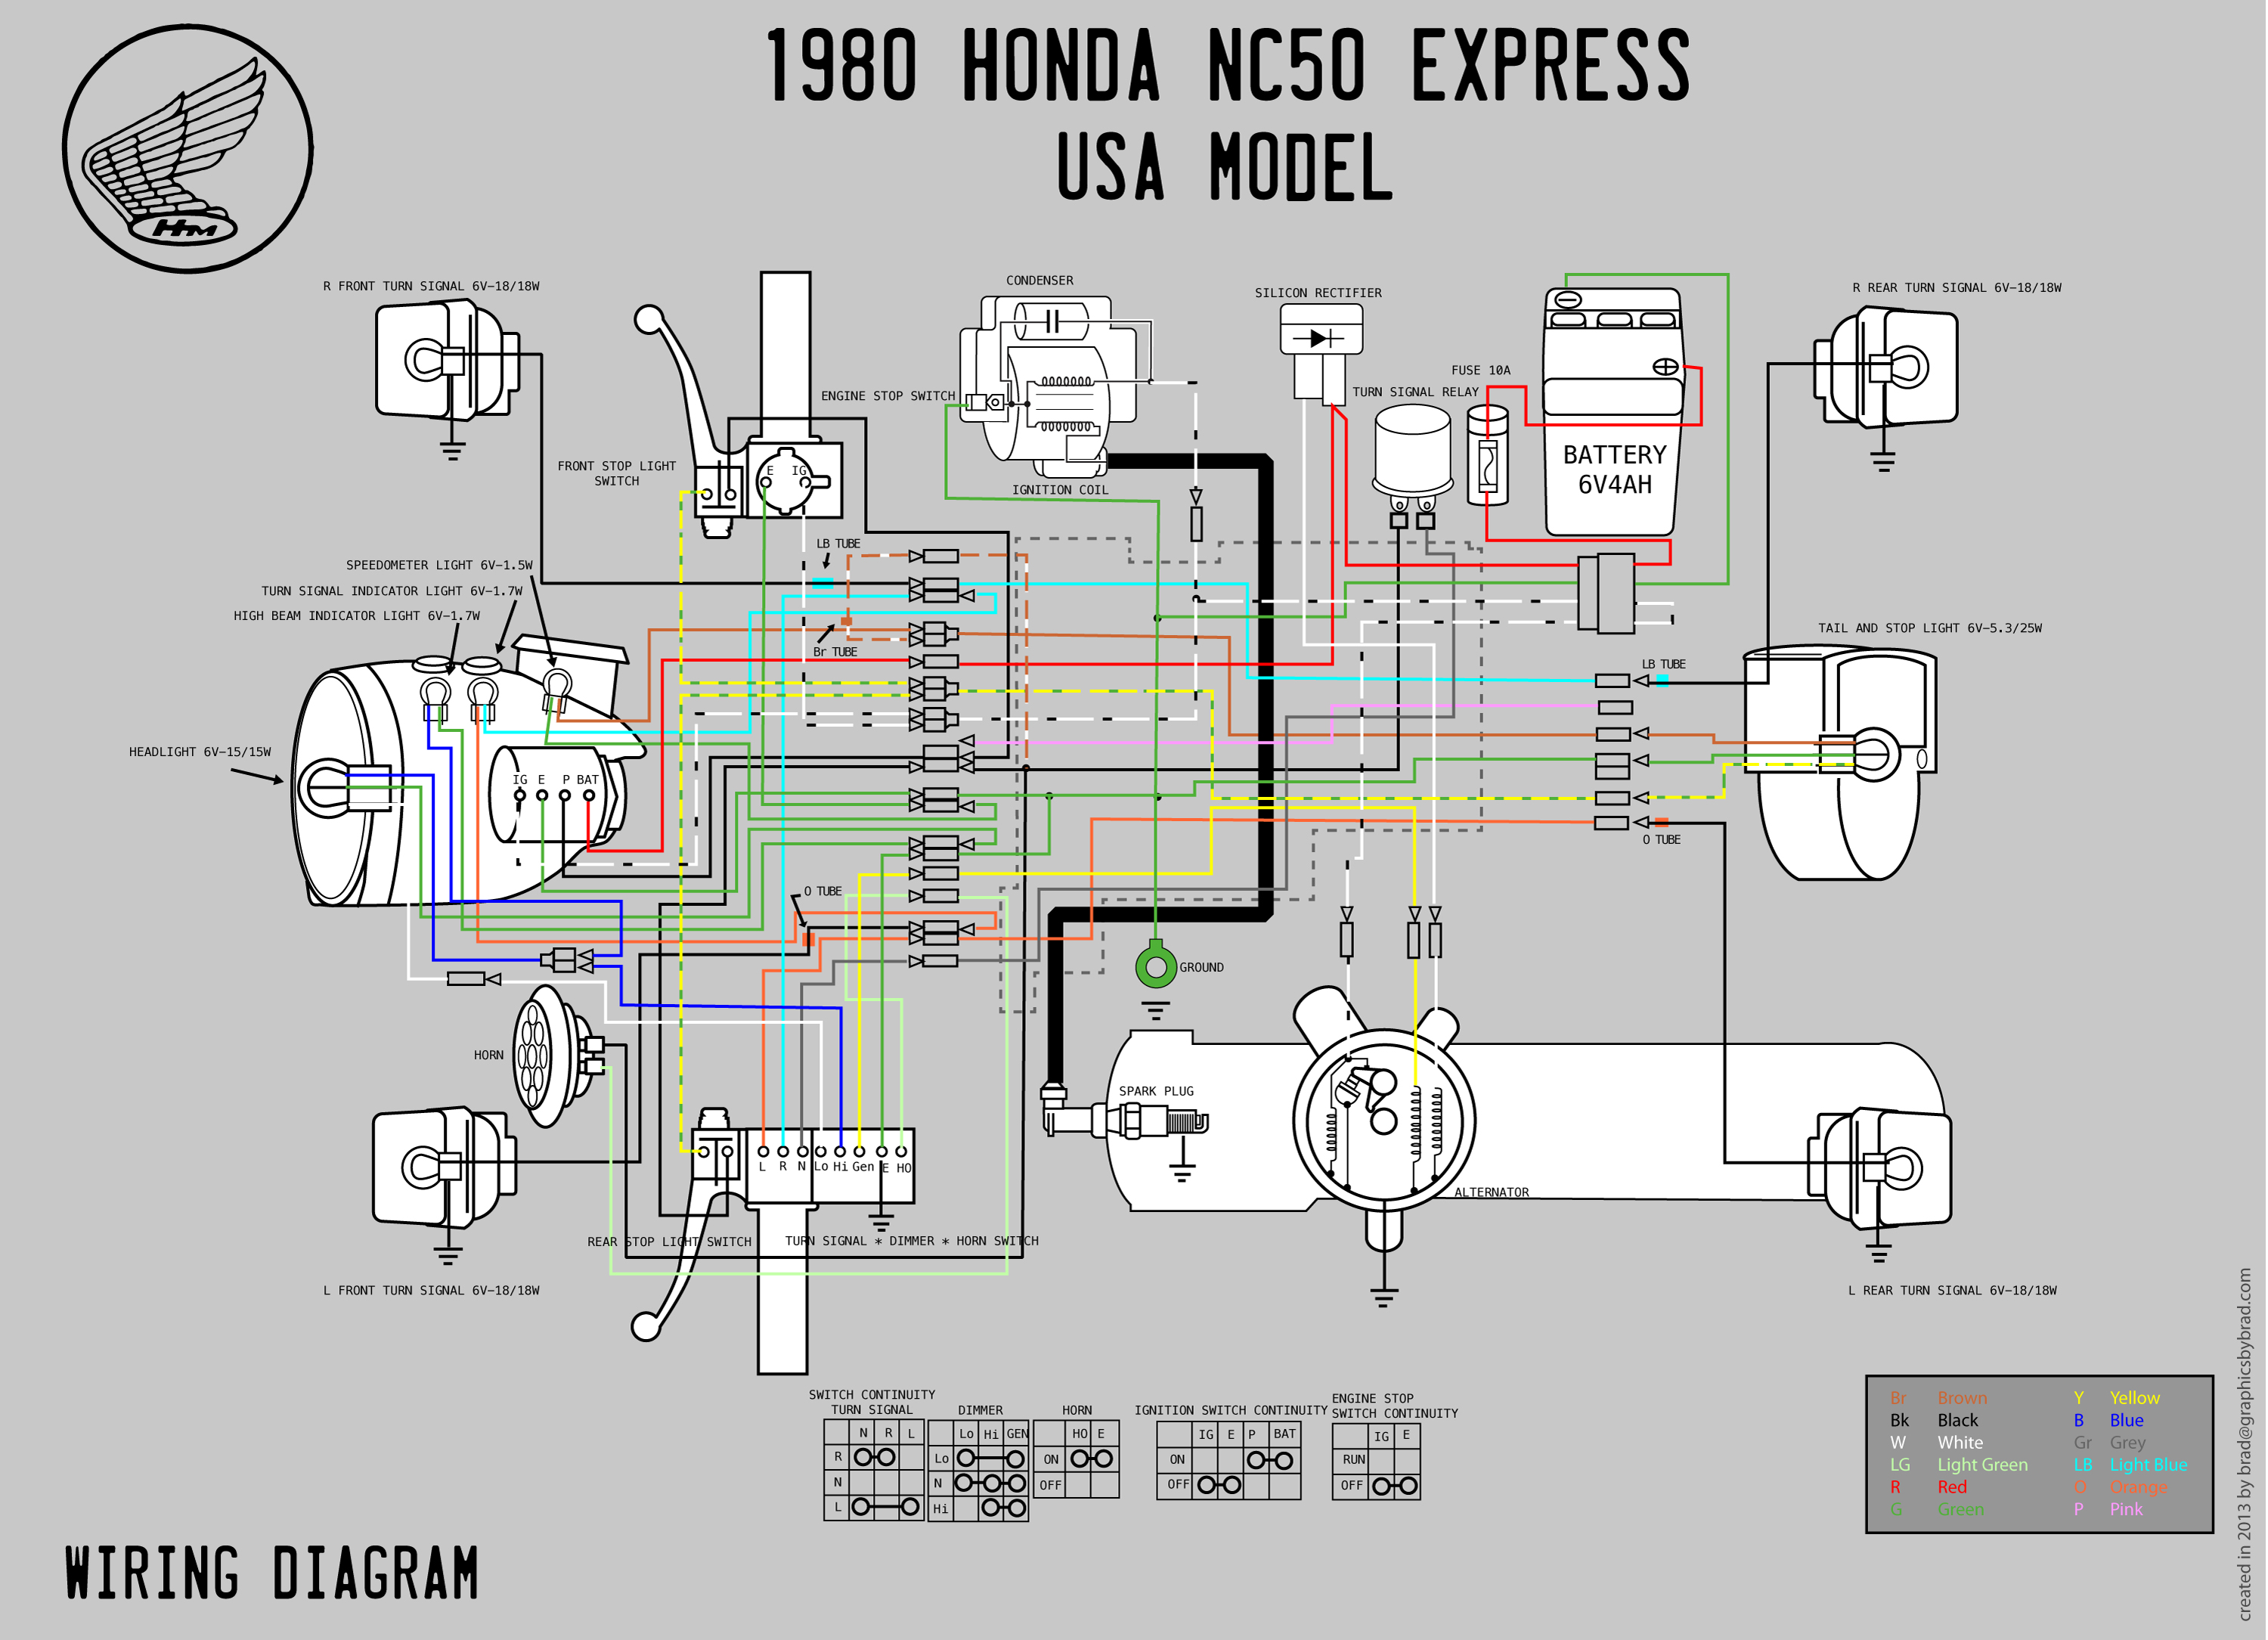 1980 nc50 wiring lrg 1980 honda express wiring diagram 1980 wiring diagrams collection tg1 express wiring diagram at alyssarenee.co